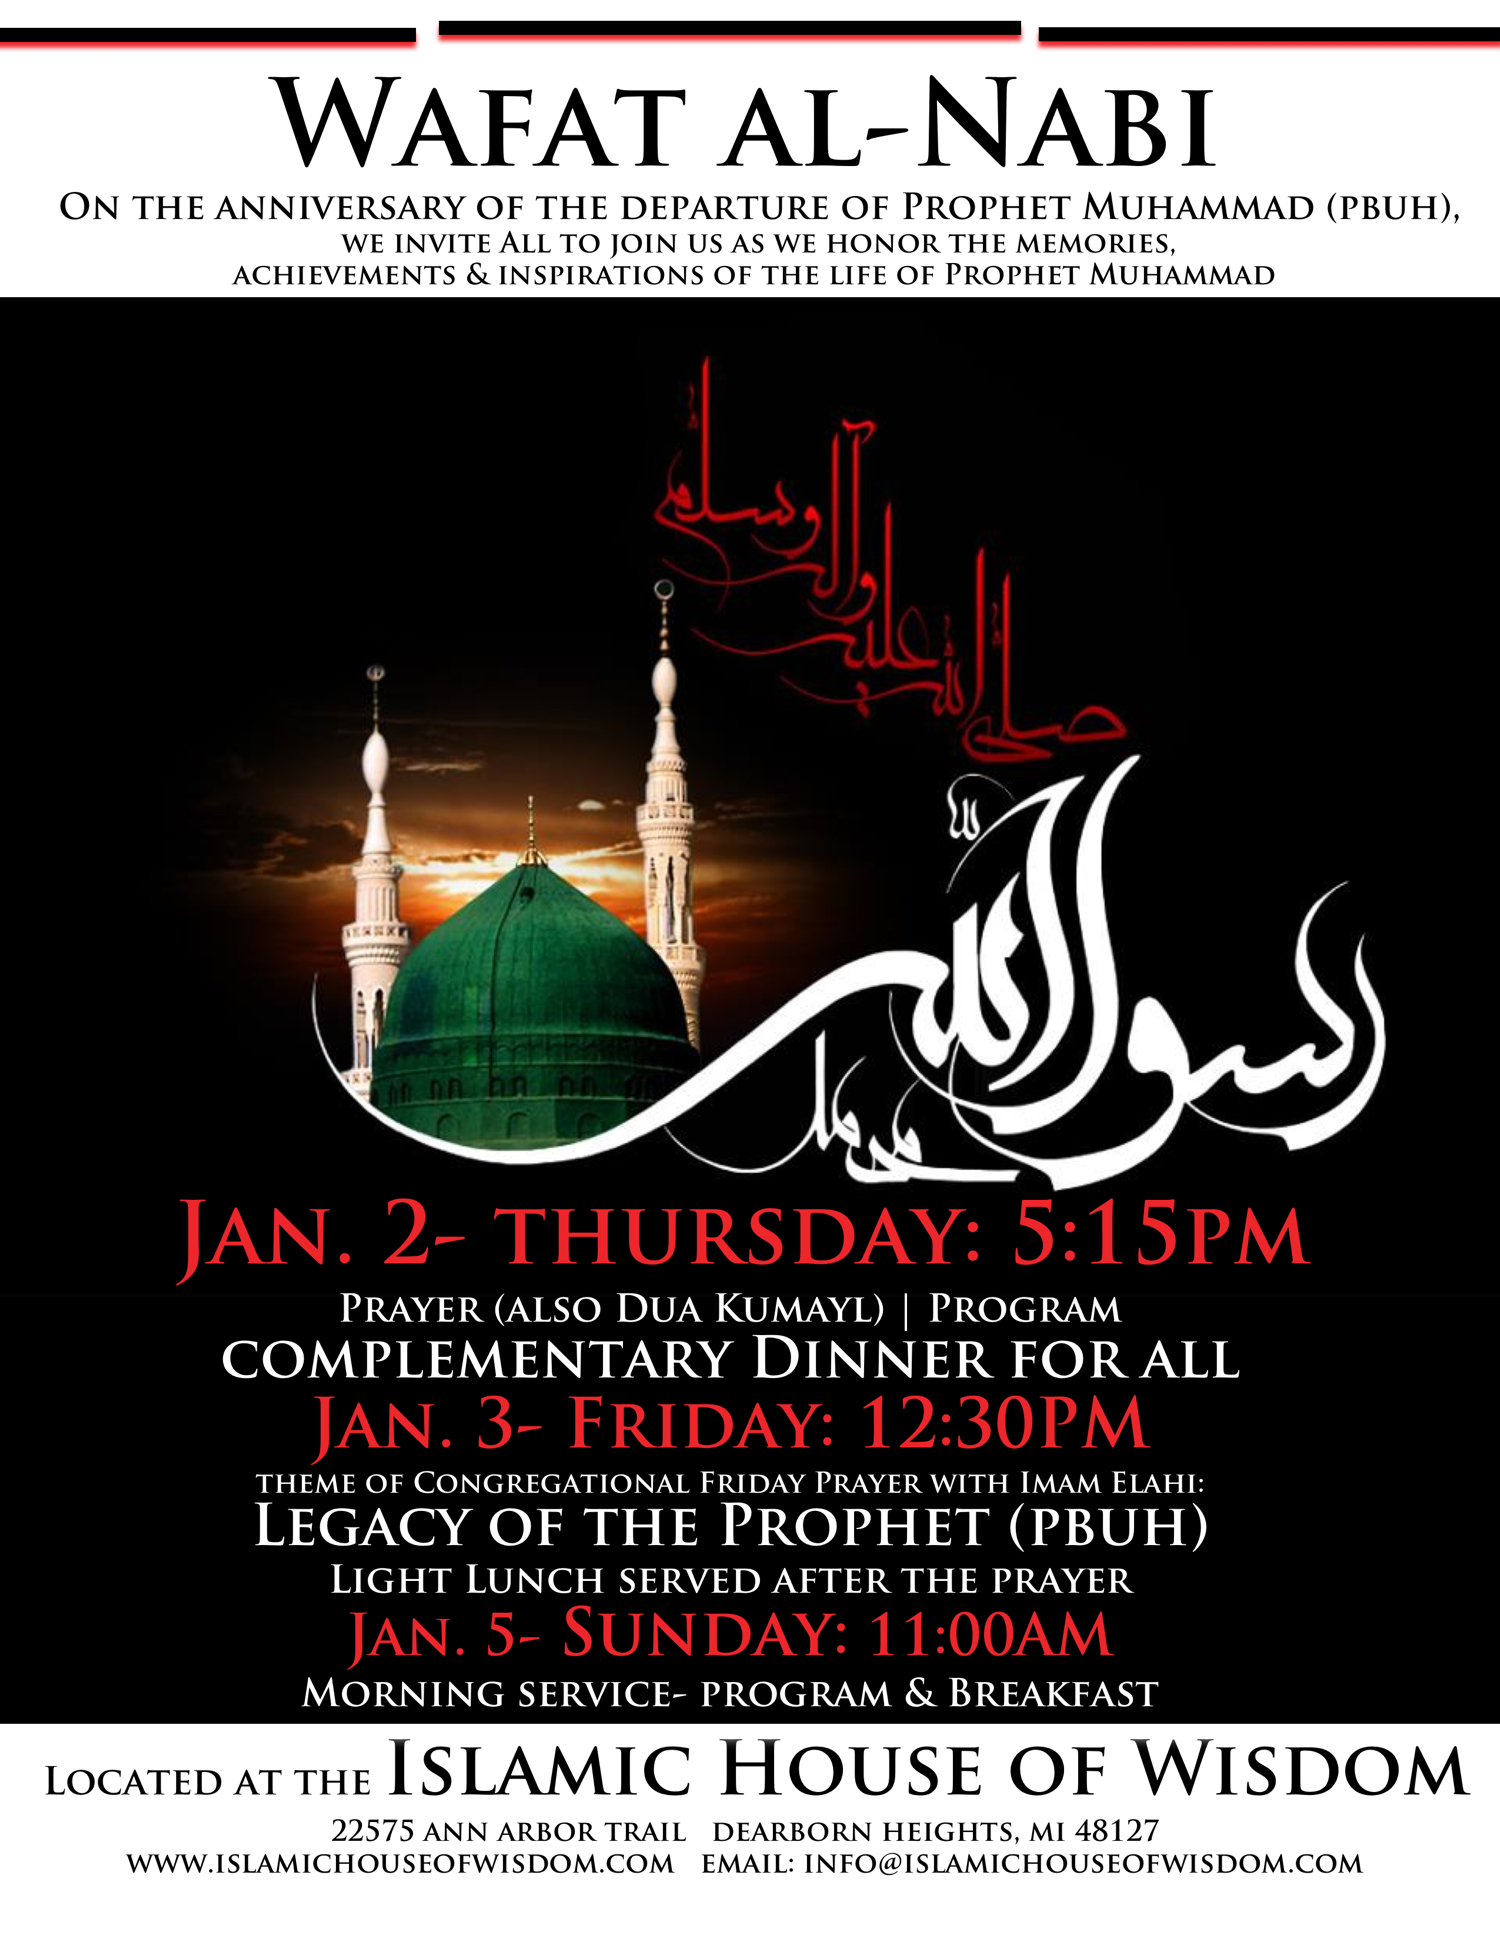 01/01/14: Prophet Muhammad- Moral Compass for 2014! Program